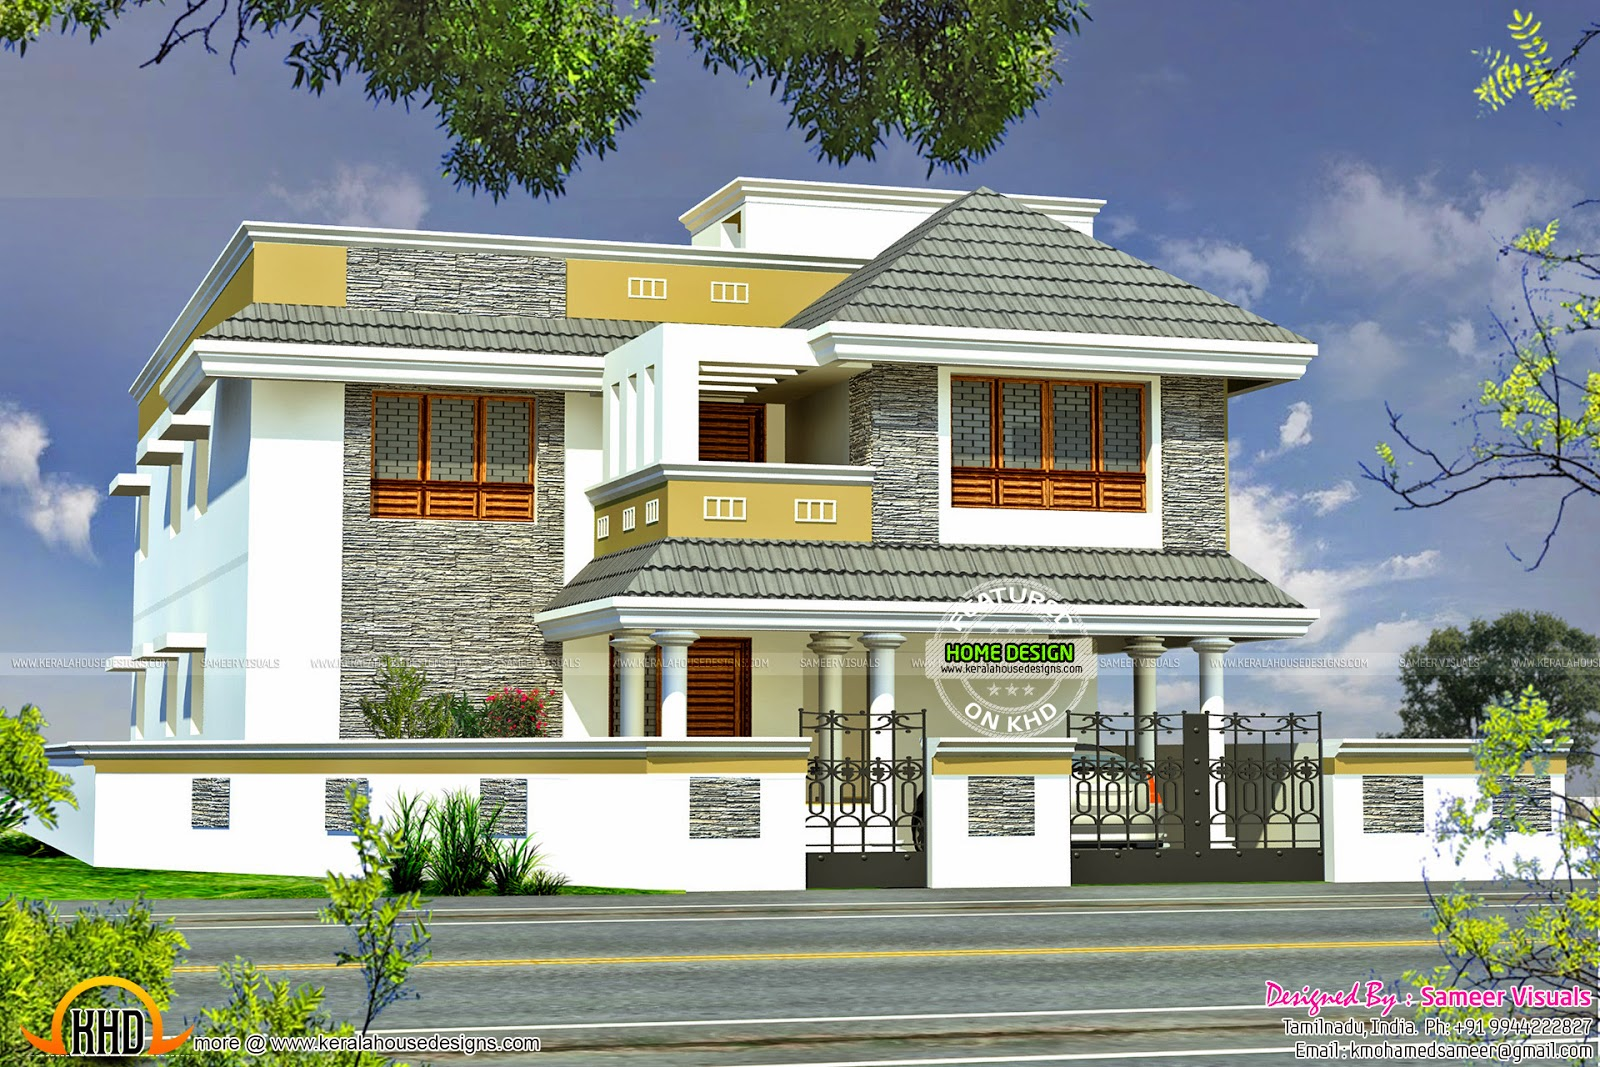 Tamilnadu house plan kerala home design and floor plans for Home designs in tamilnadu